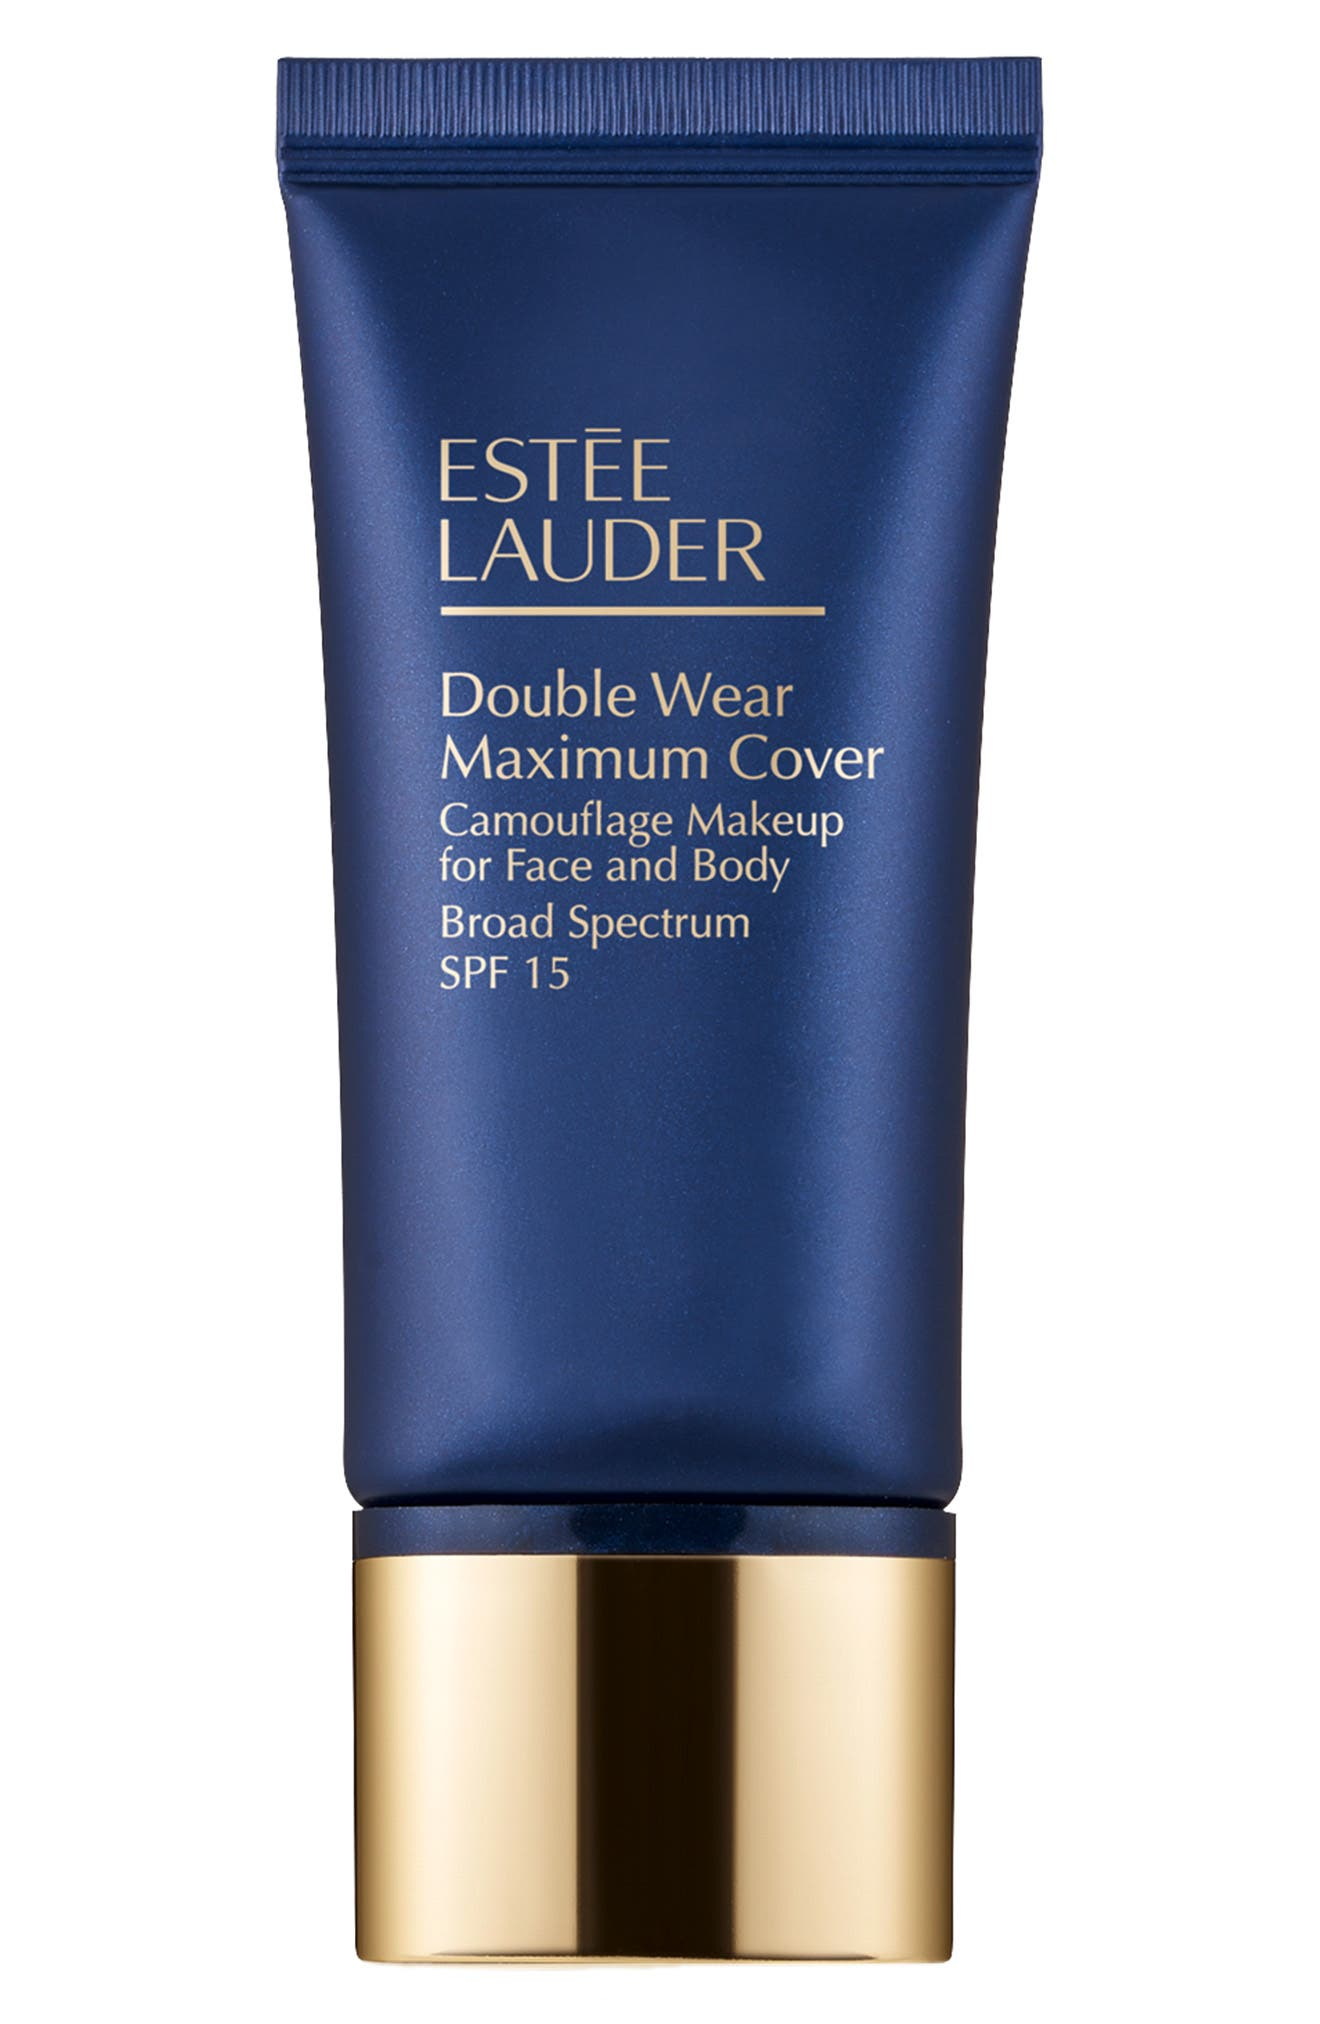 Double Wear Maximum Cover Camouflage Makeup for Face and Body SPF 15,                         Main,                         color,